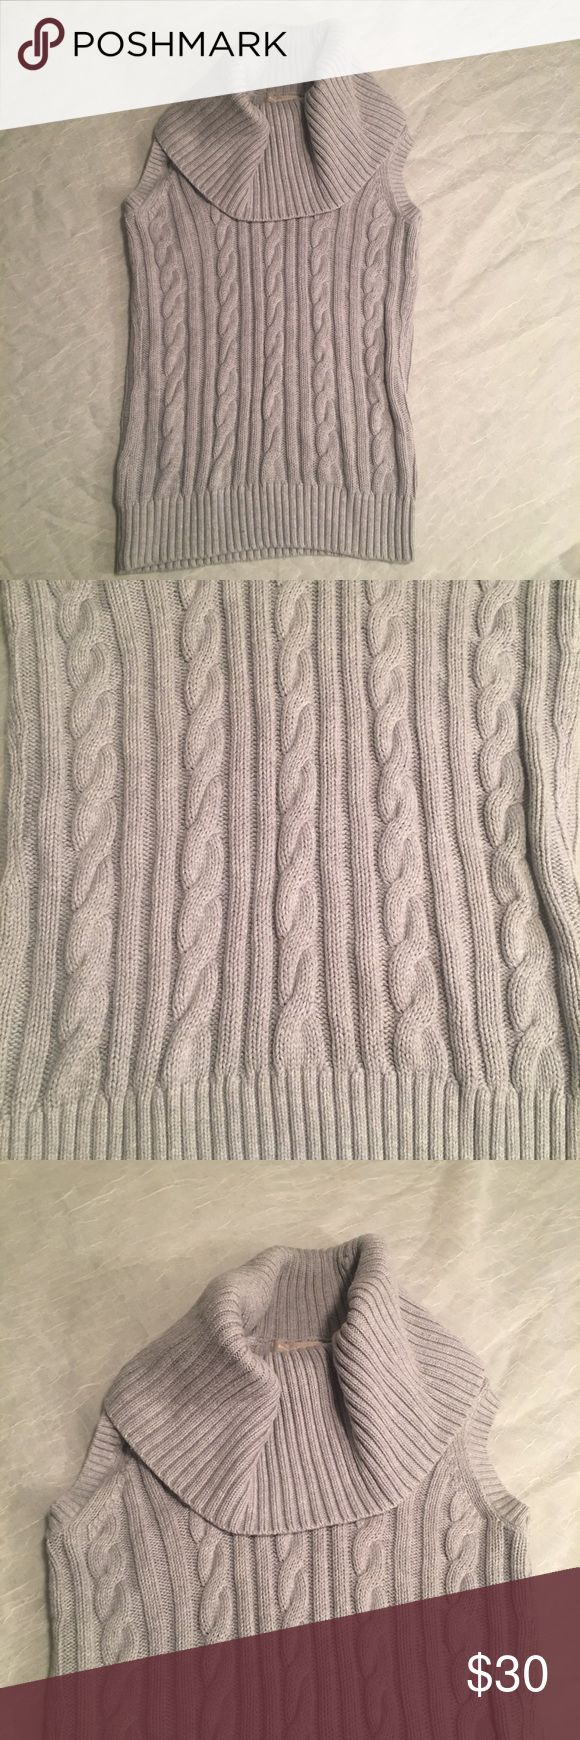 Banana Republic Short Sleeves Cowl Neck Sweater This sweater is LIKE NEW! Beautiful knit, size Medium. Short sleeves with elegant cowl neck 😍👌❤️ Banana Republic Sweaters Cowl & Turtlenecks